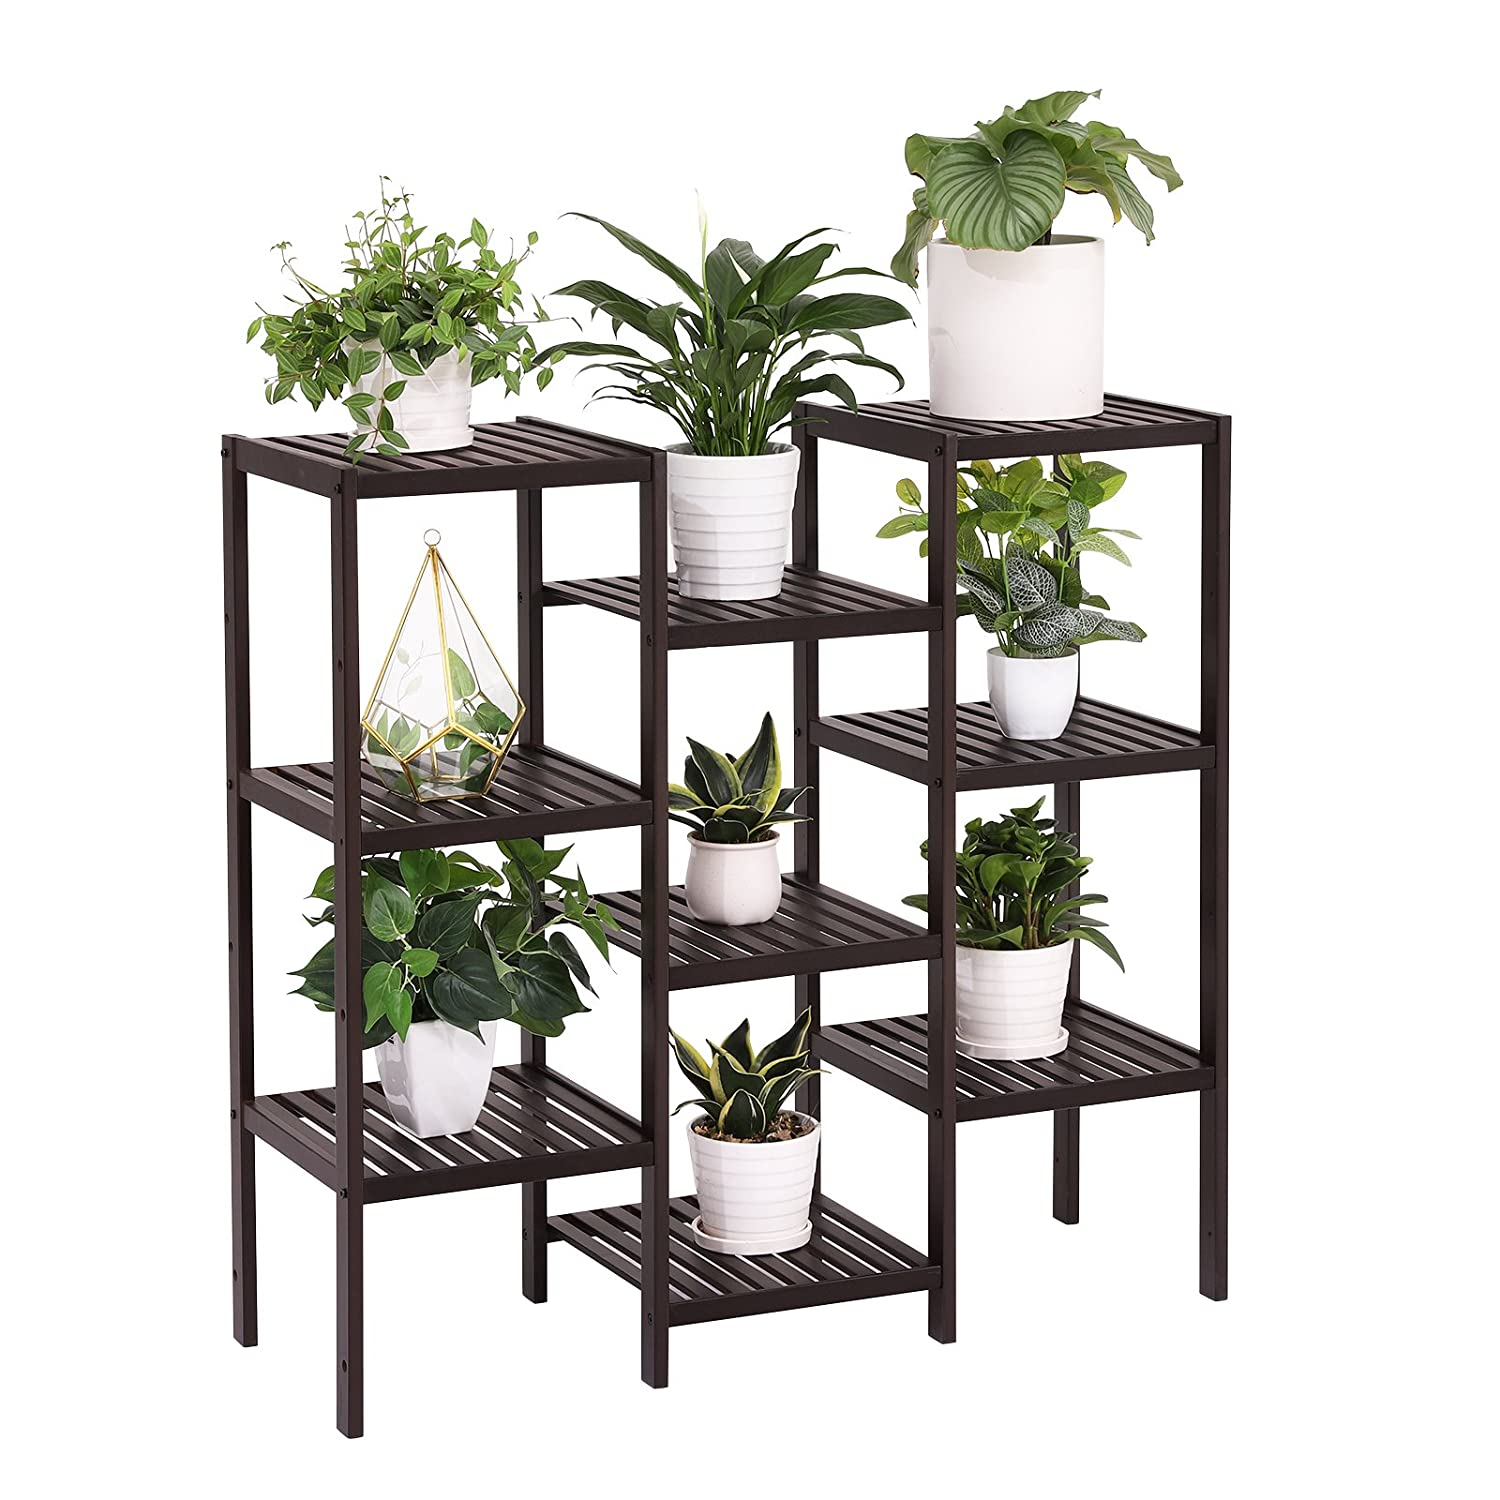 225 & SONGMICS Bamboo Customizable Plant Stand Flower Pots Holder Display Utility Shelf Bathroom Storage Rack Shelving Unit Brown UBCB93BR